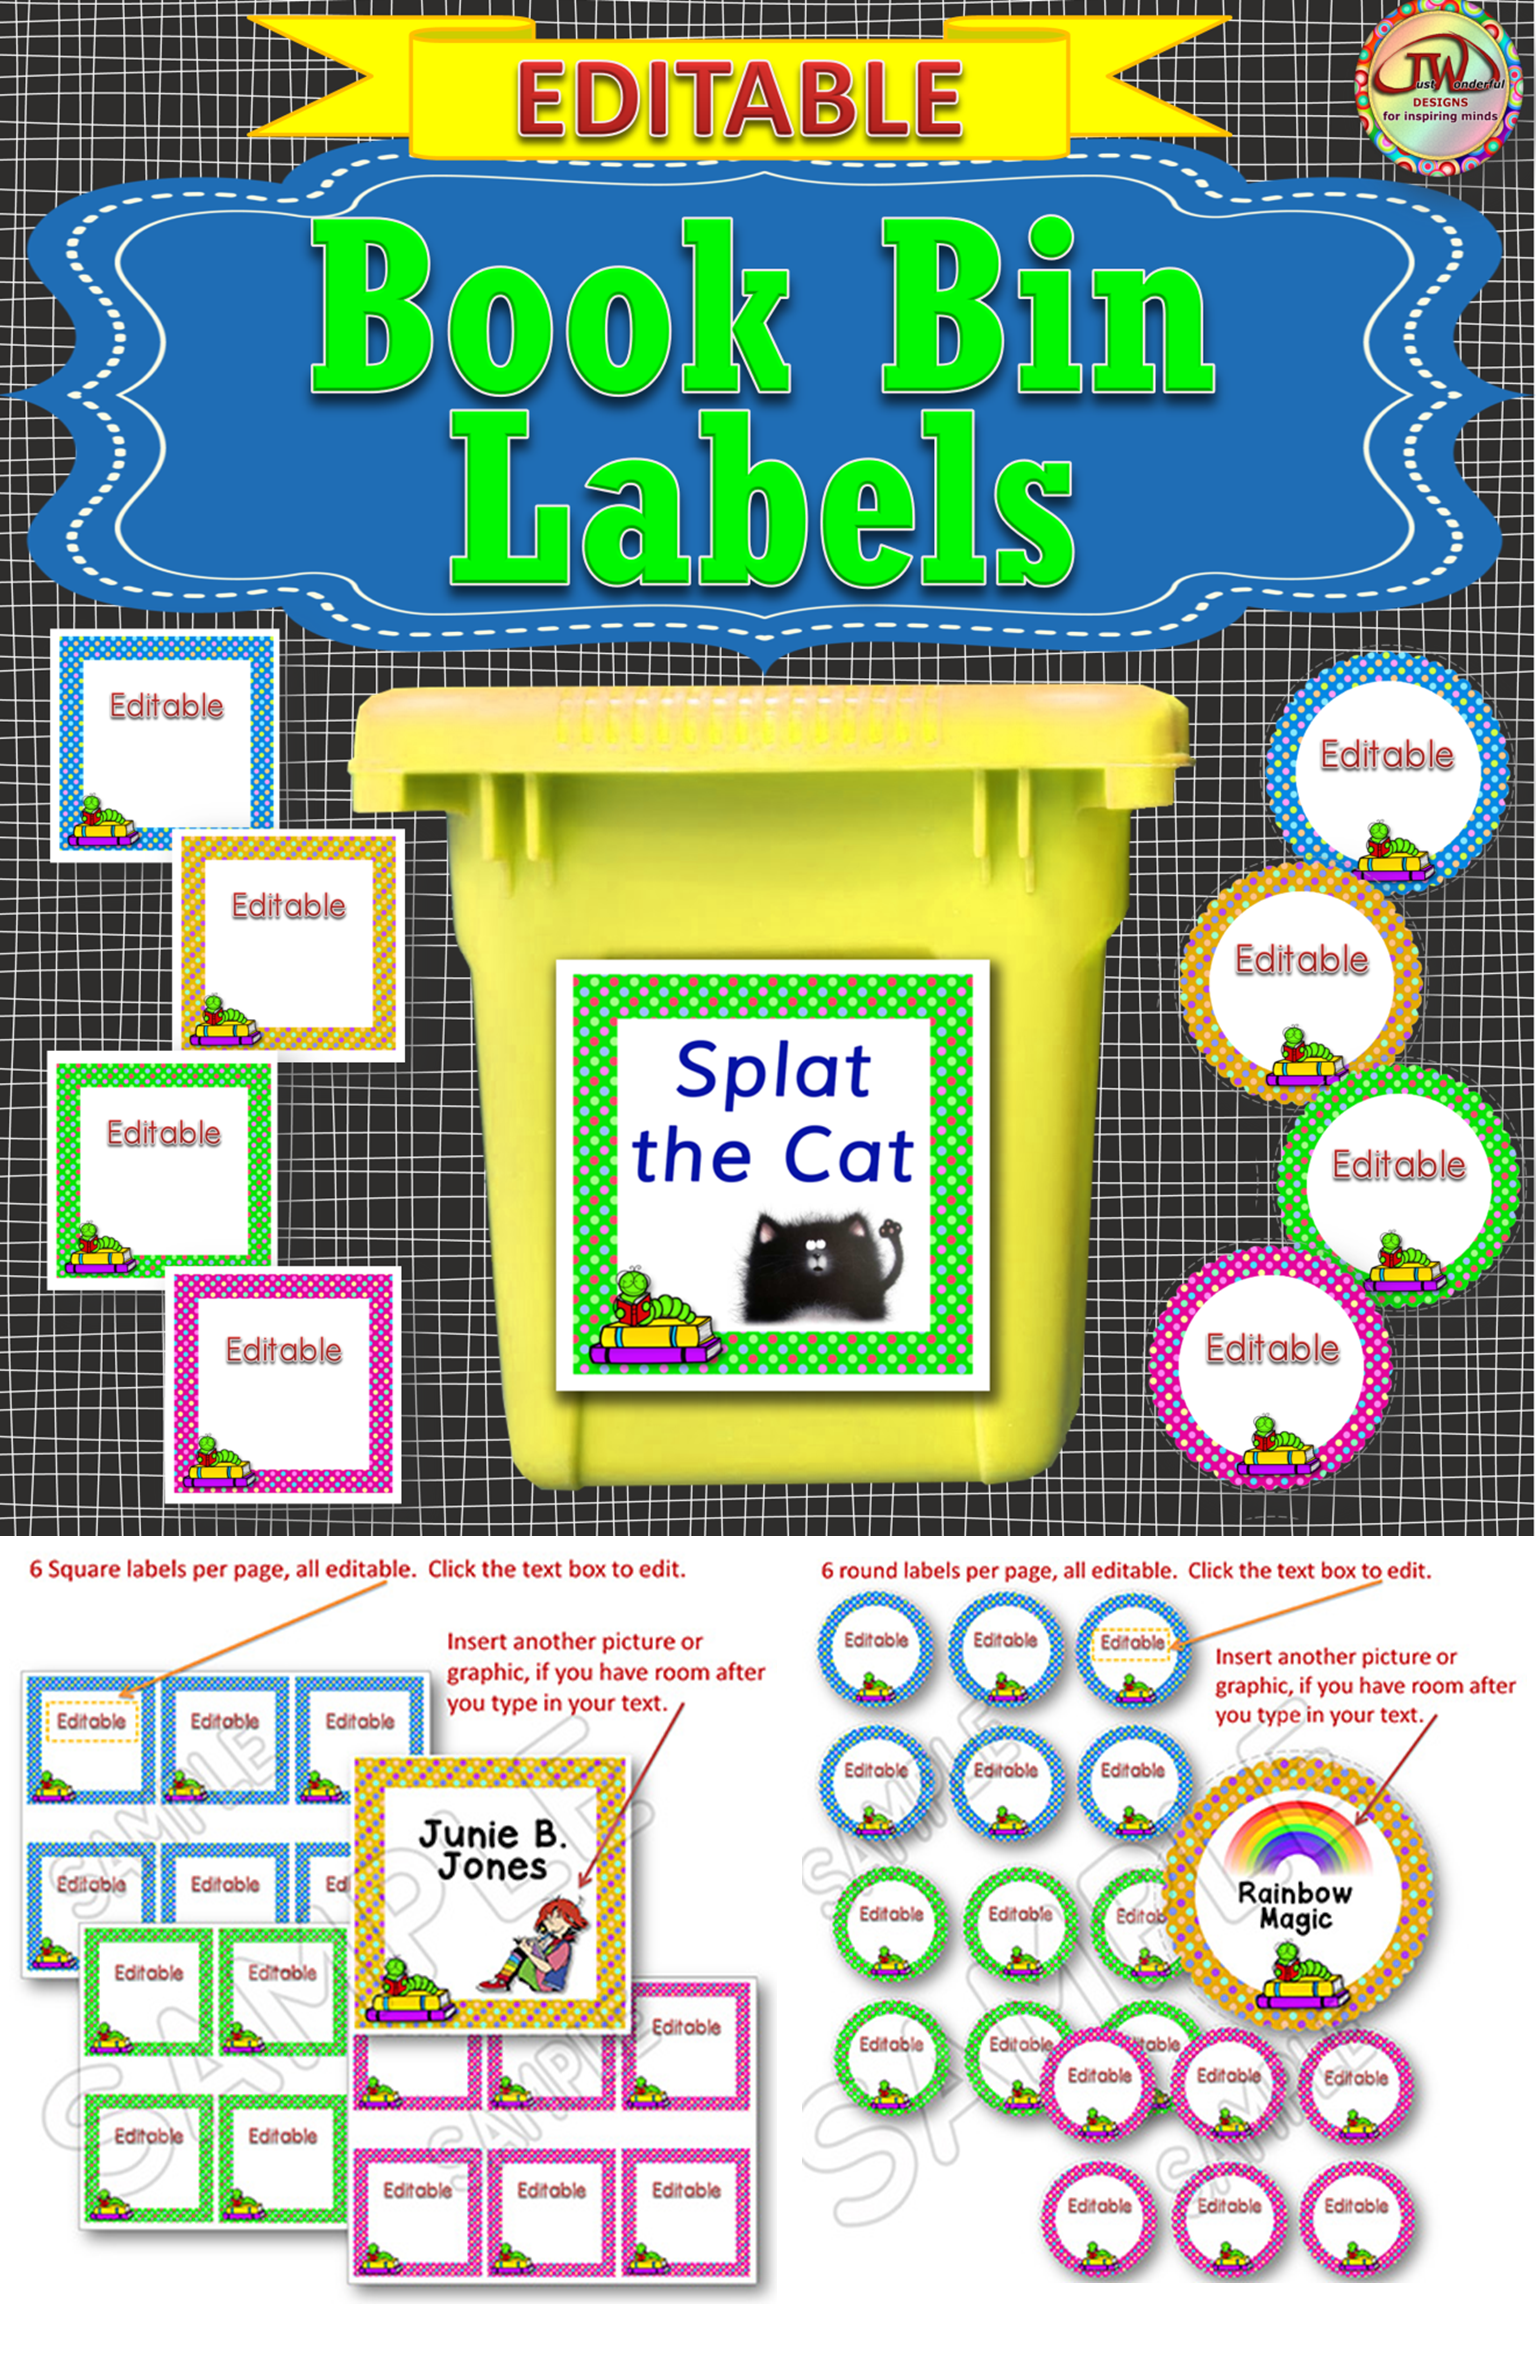 editable labels - book bin labels for the classroom library polka